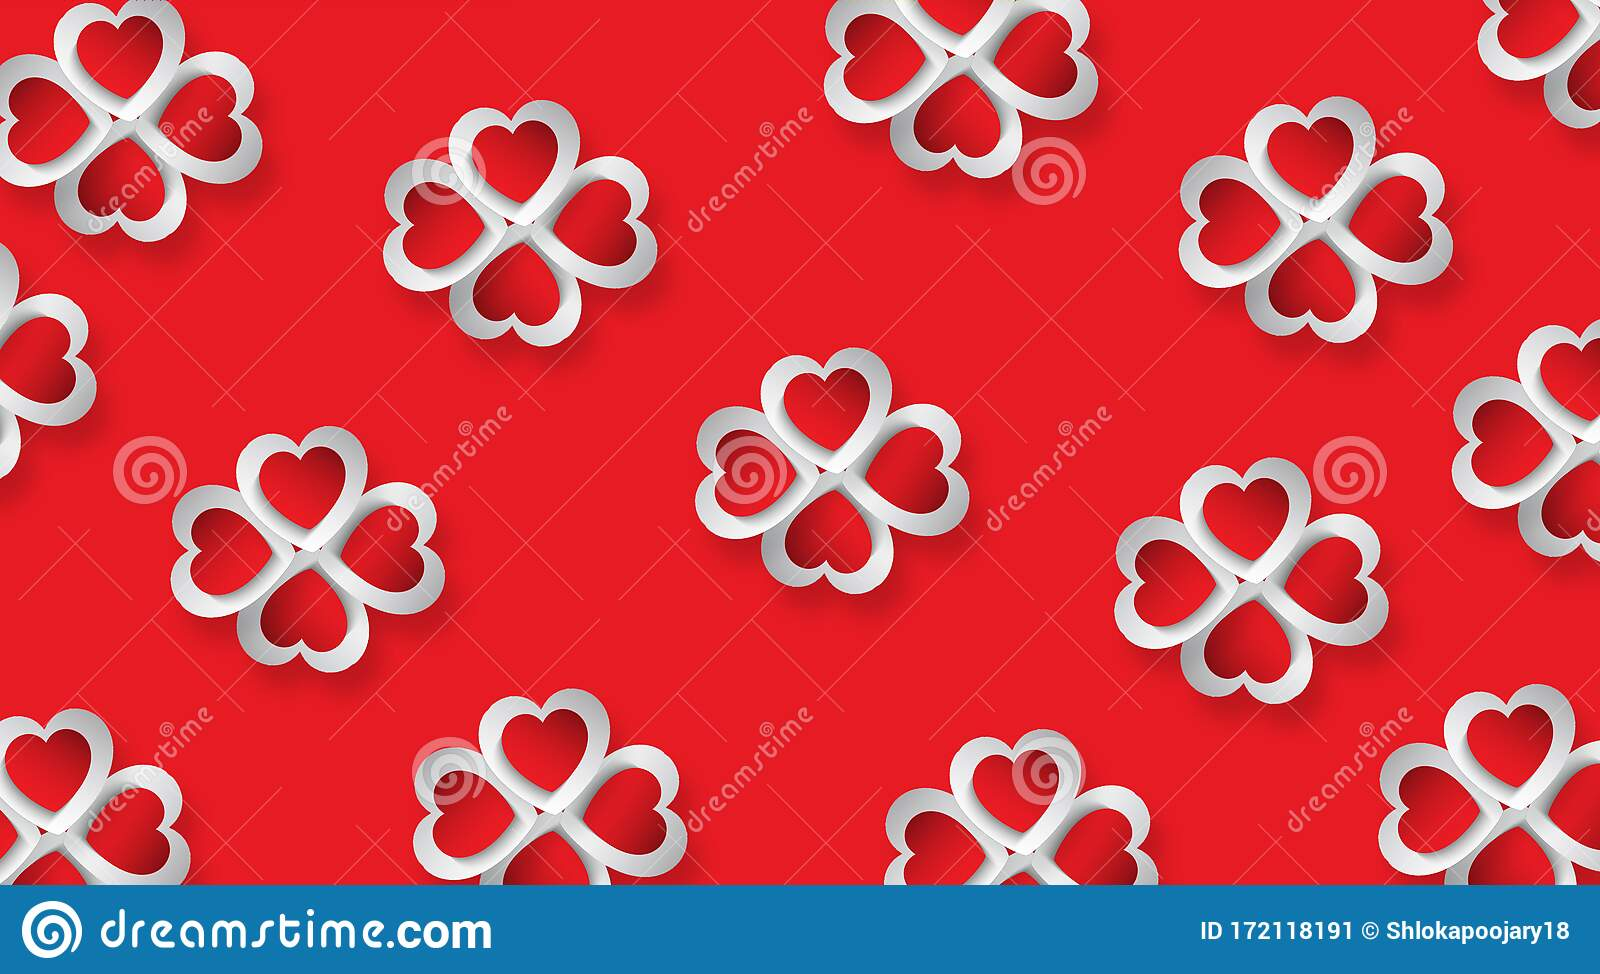 red white d hearts placed flower form red background love wallpaper cute background red white d hearts placed 172118191